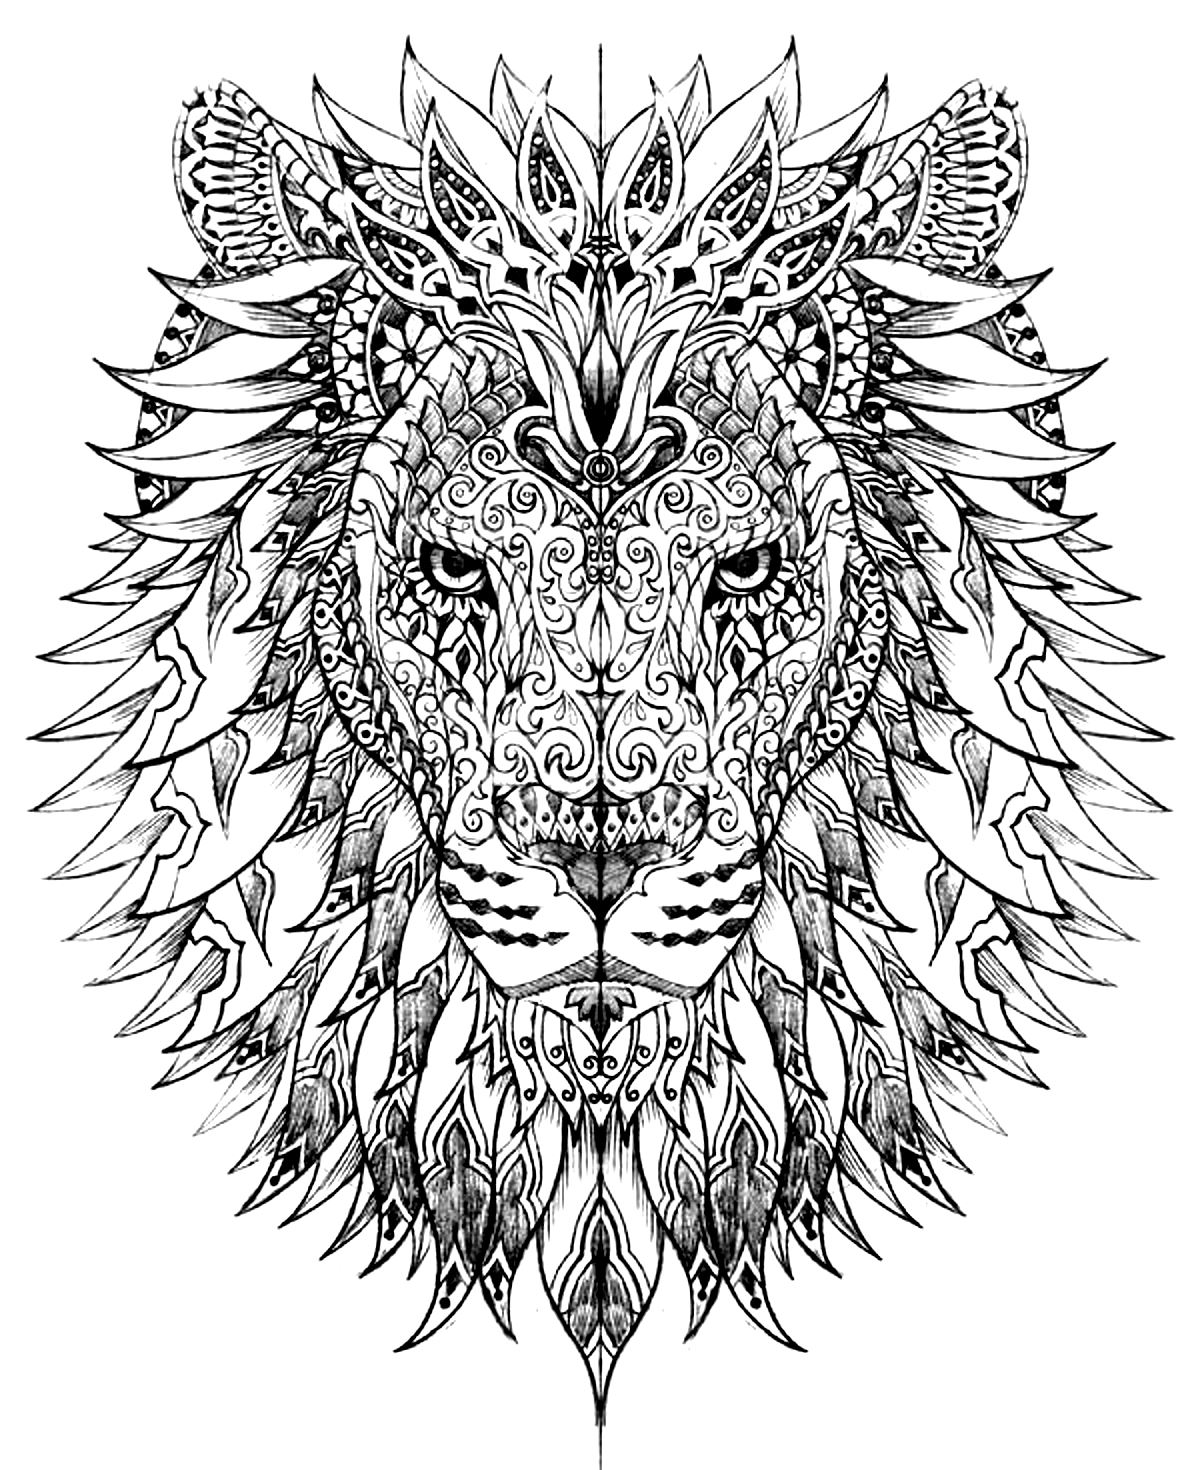 Lions coloring pictures - Lion Head Drawn With Very Smart And Harmonious Patterns From The Gallery Animals